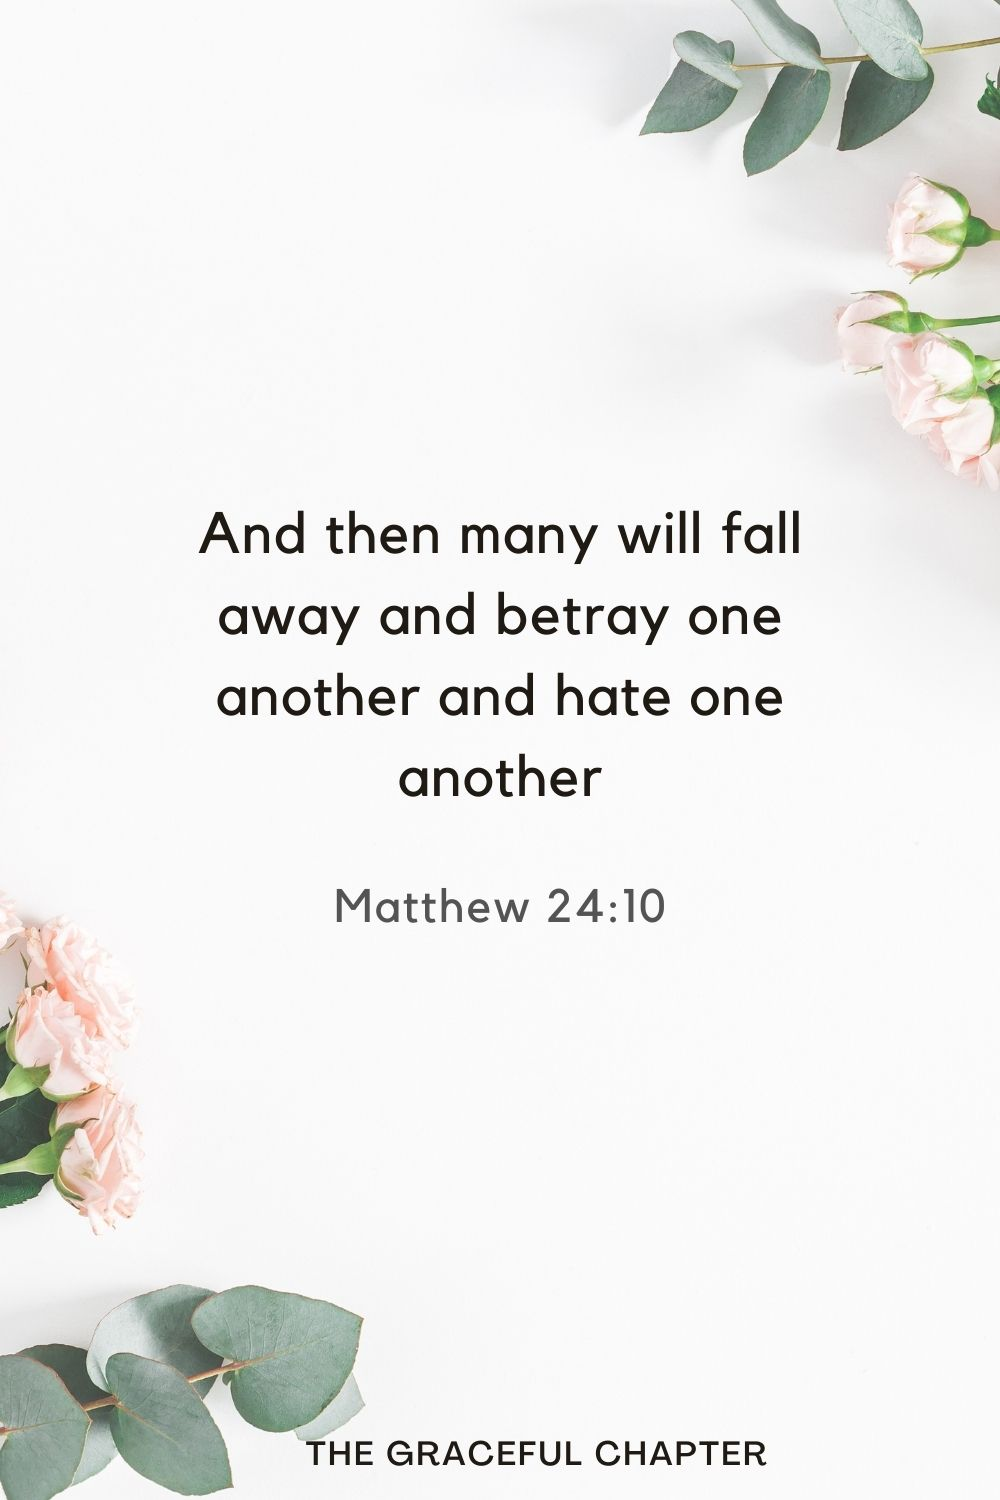 And then many will fall away and betray one another and hate one another. Matthew 24:10